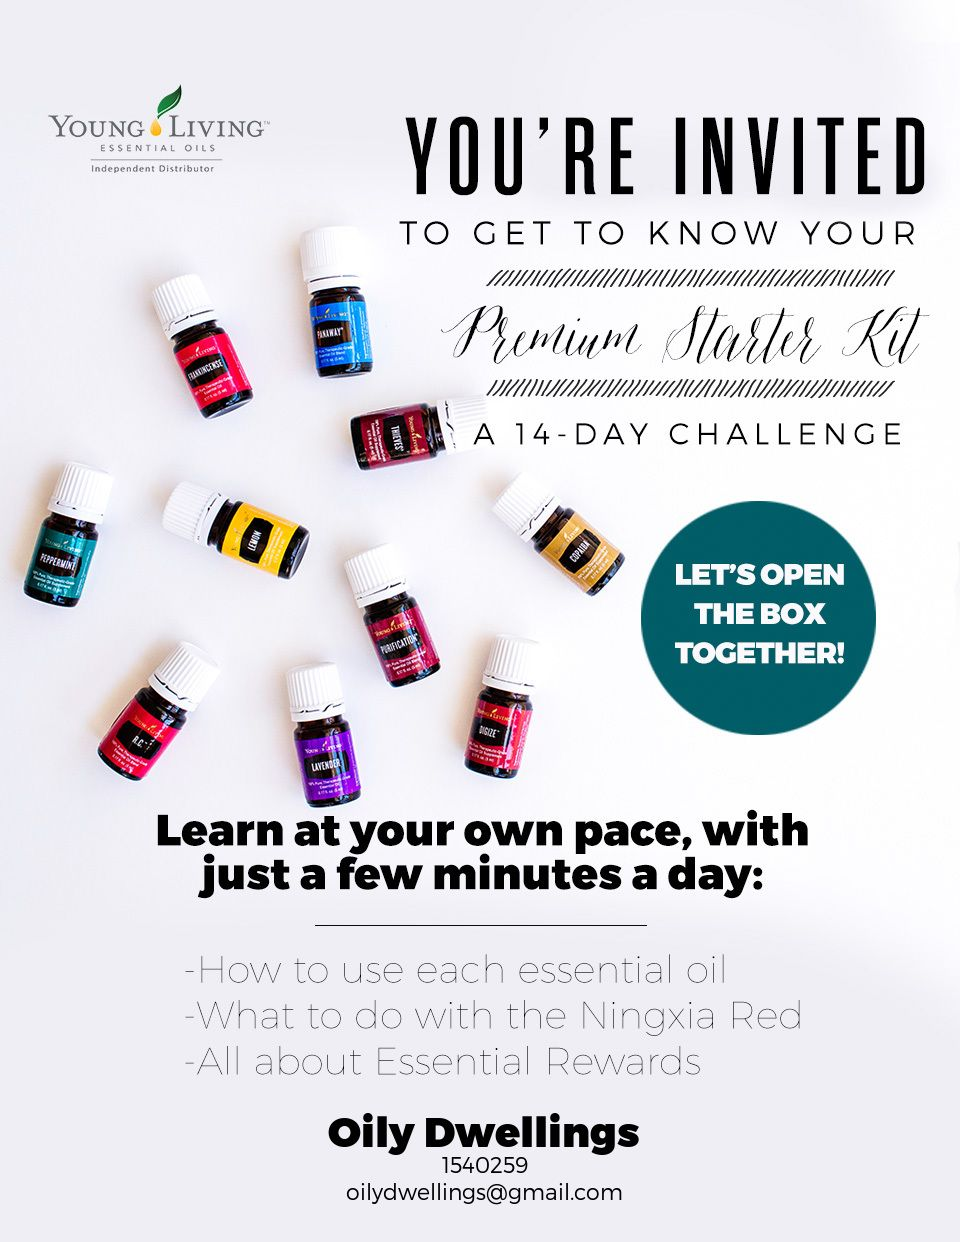 Get to Know Your Premium Starter Kit - 14 Day Challenge